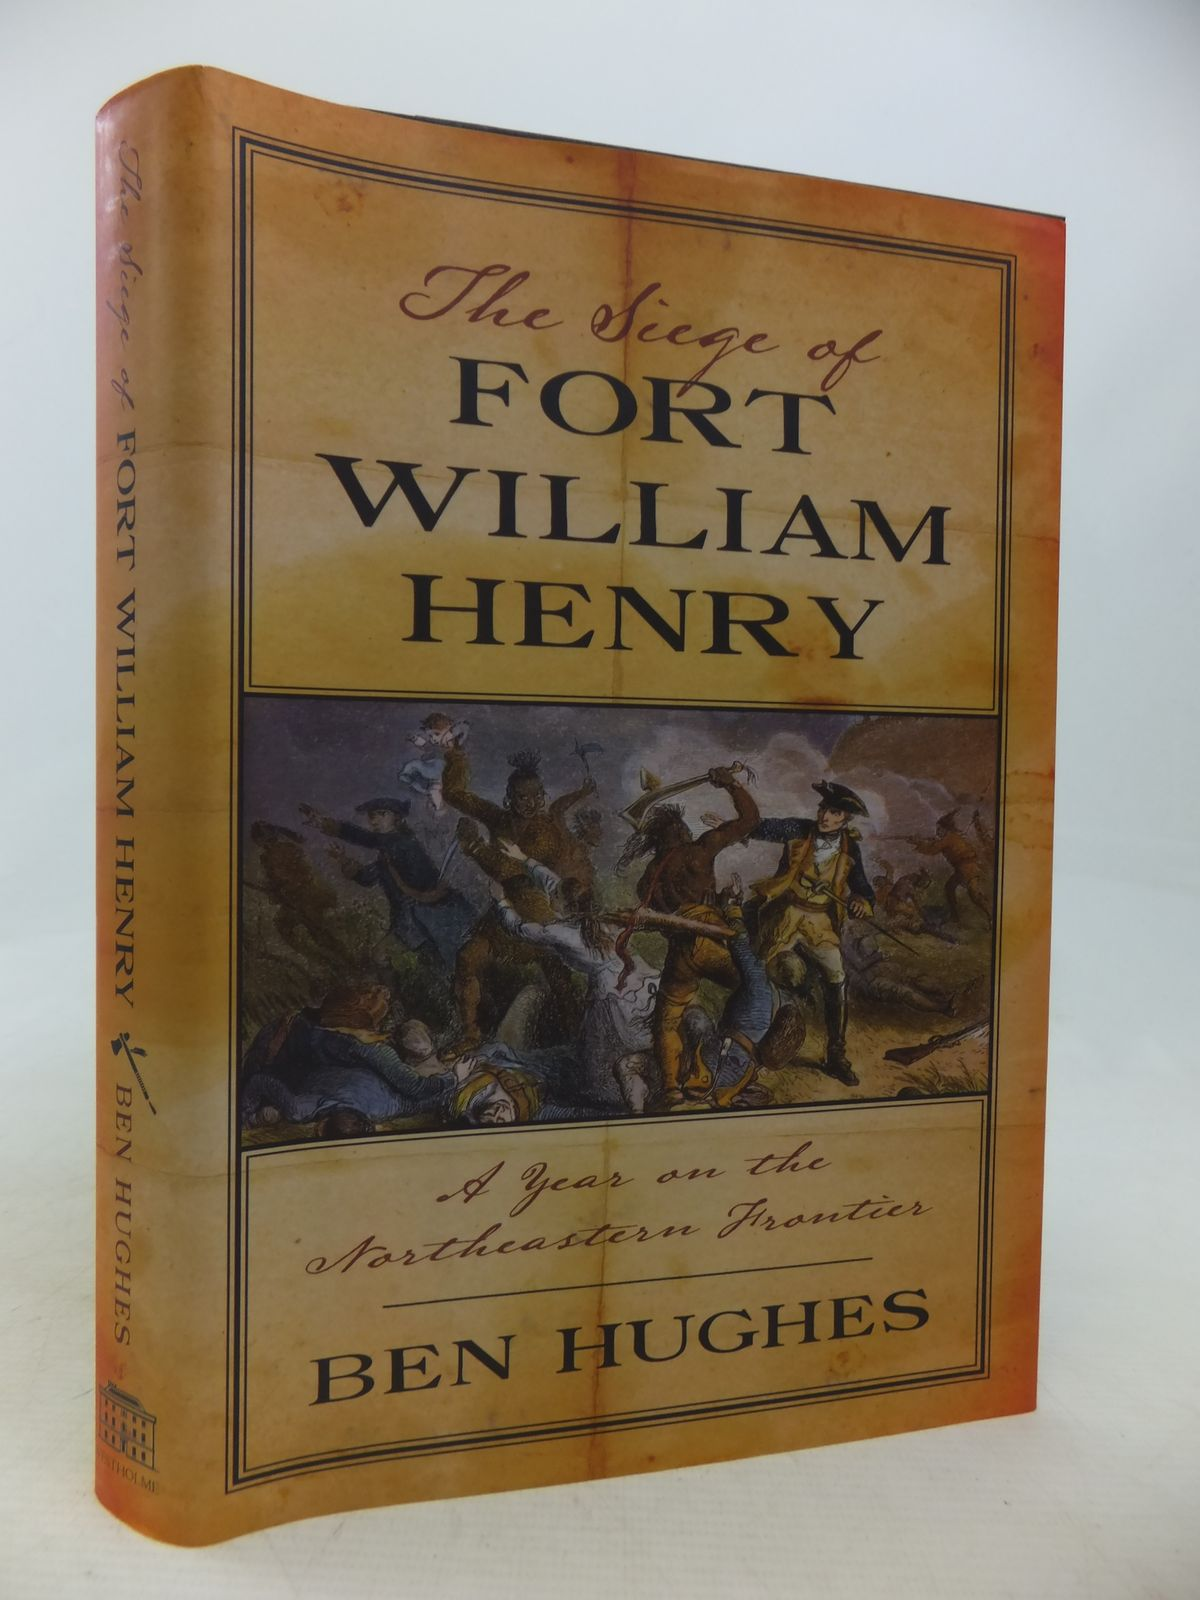 The Siege of Fort William Henry: A Year on the Northeastern Frontier